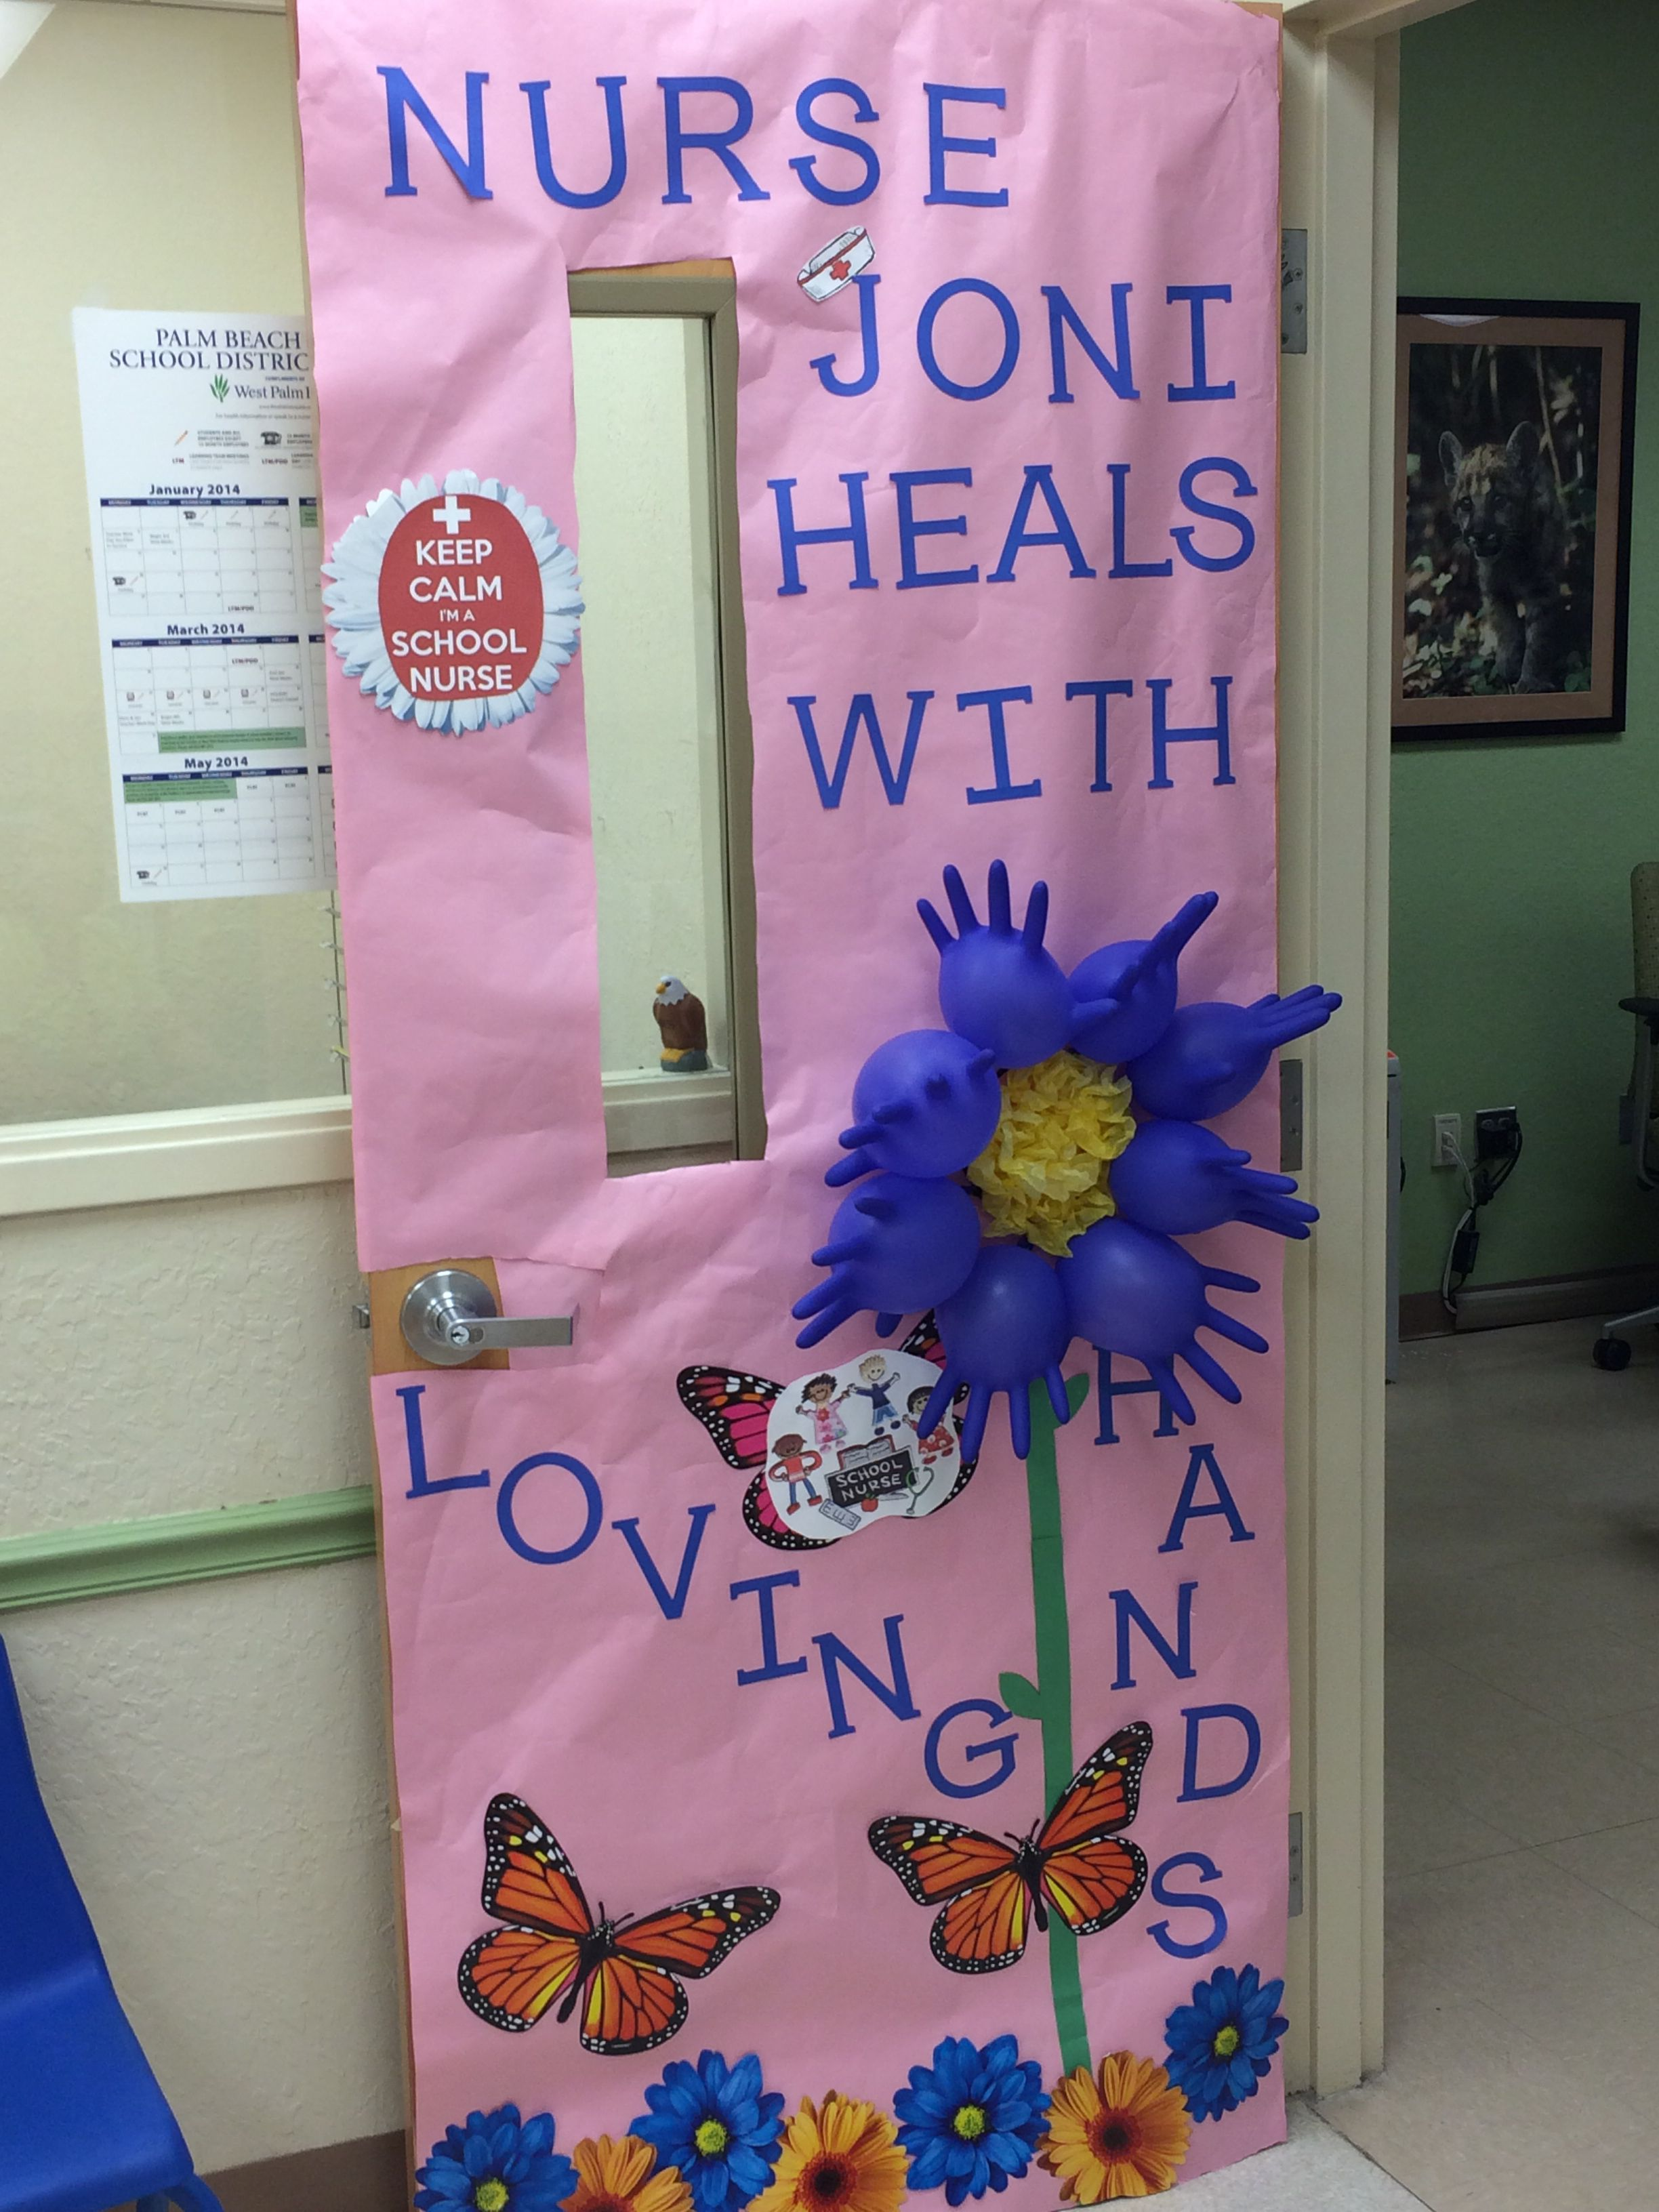 School Nurse Door Design Could Cut Out Hands For Flower Instead Of